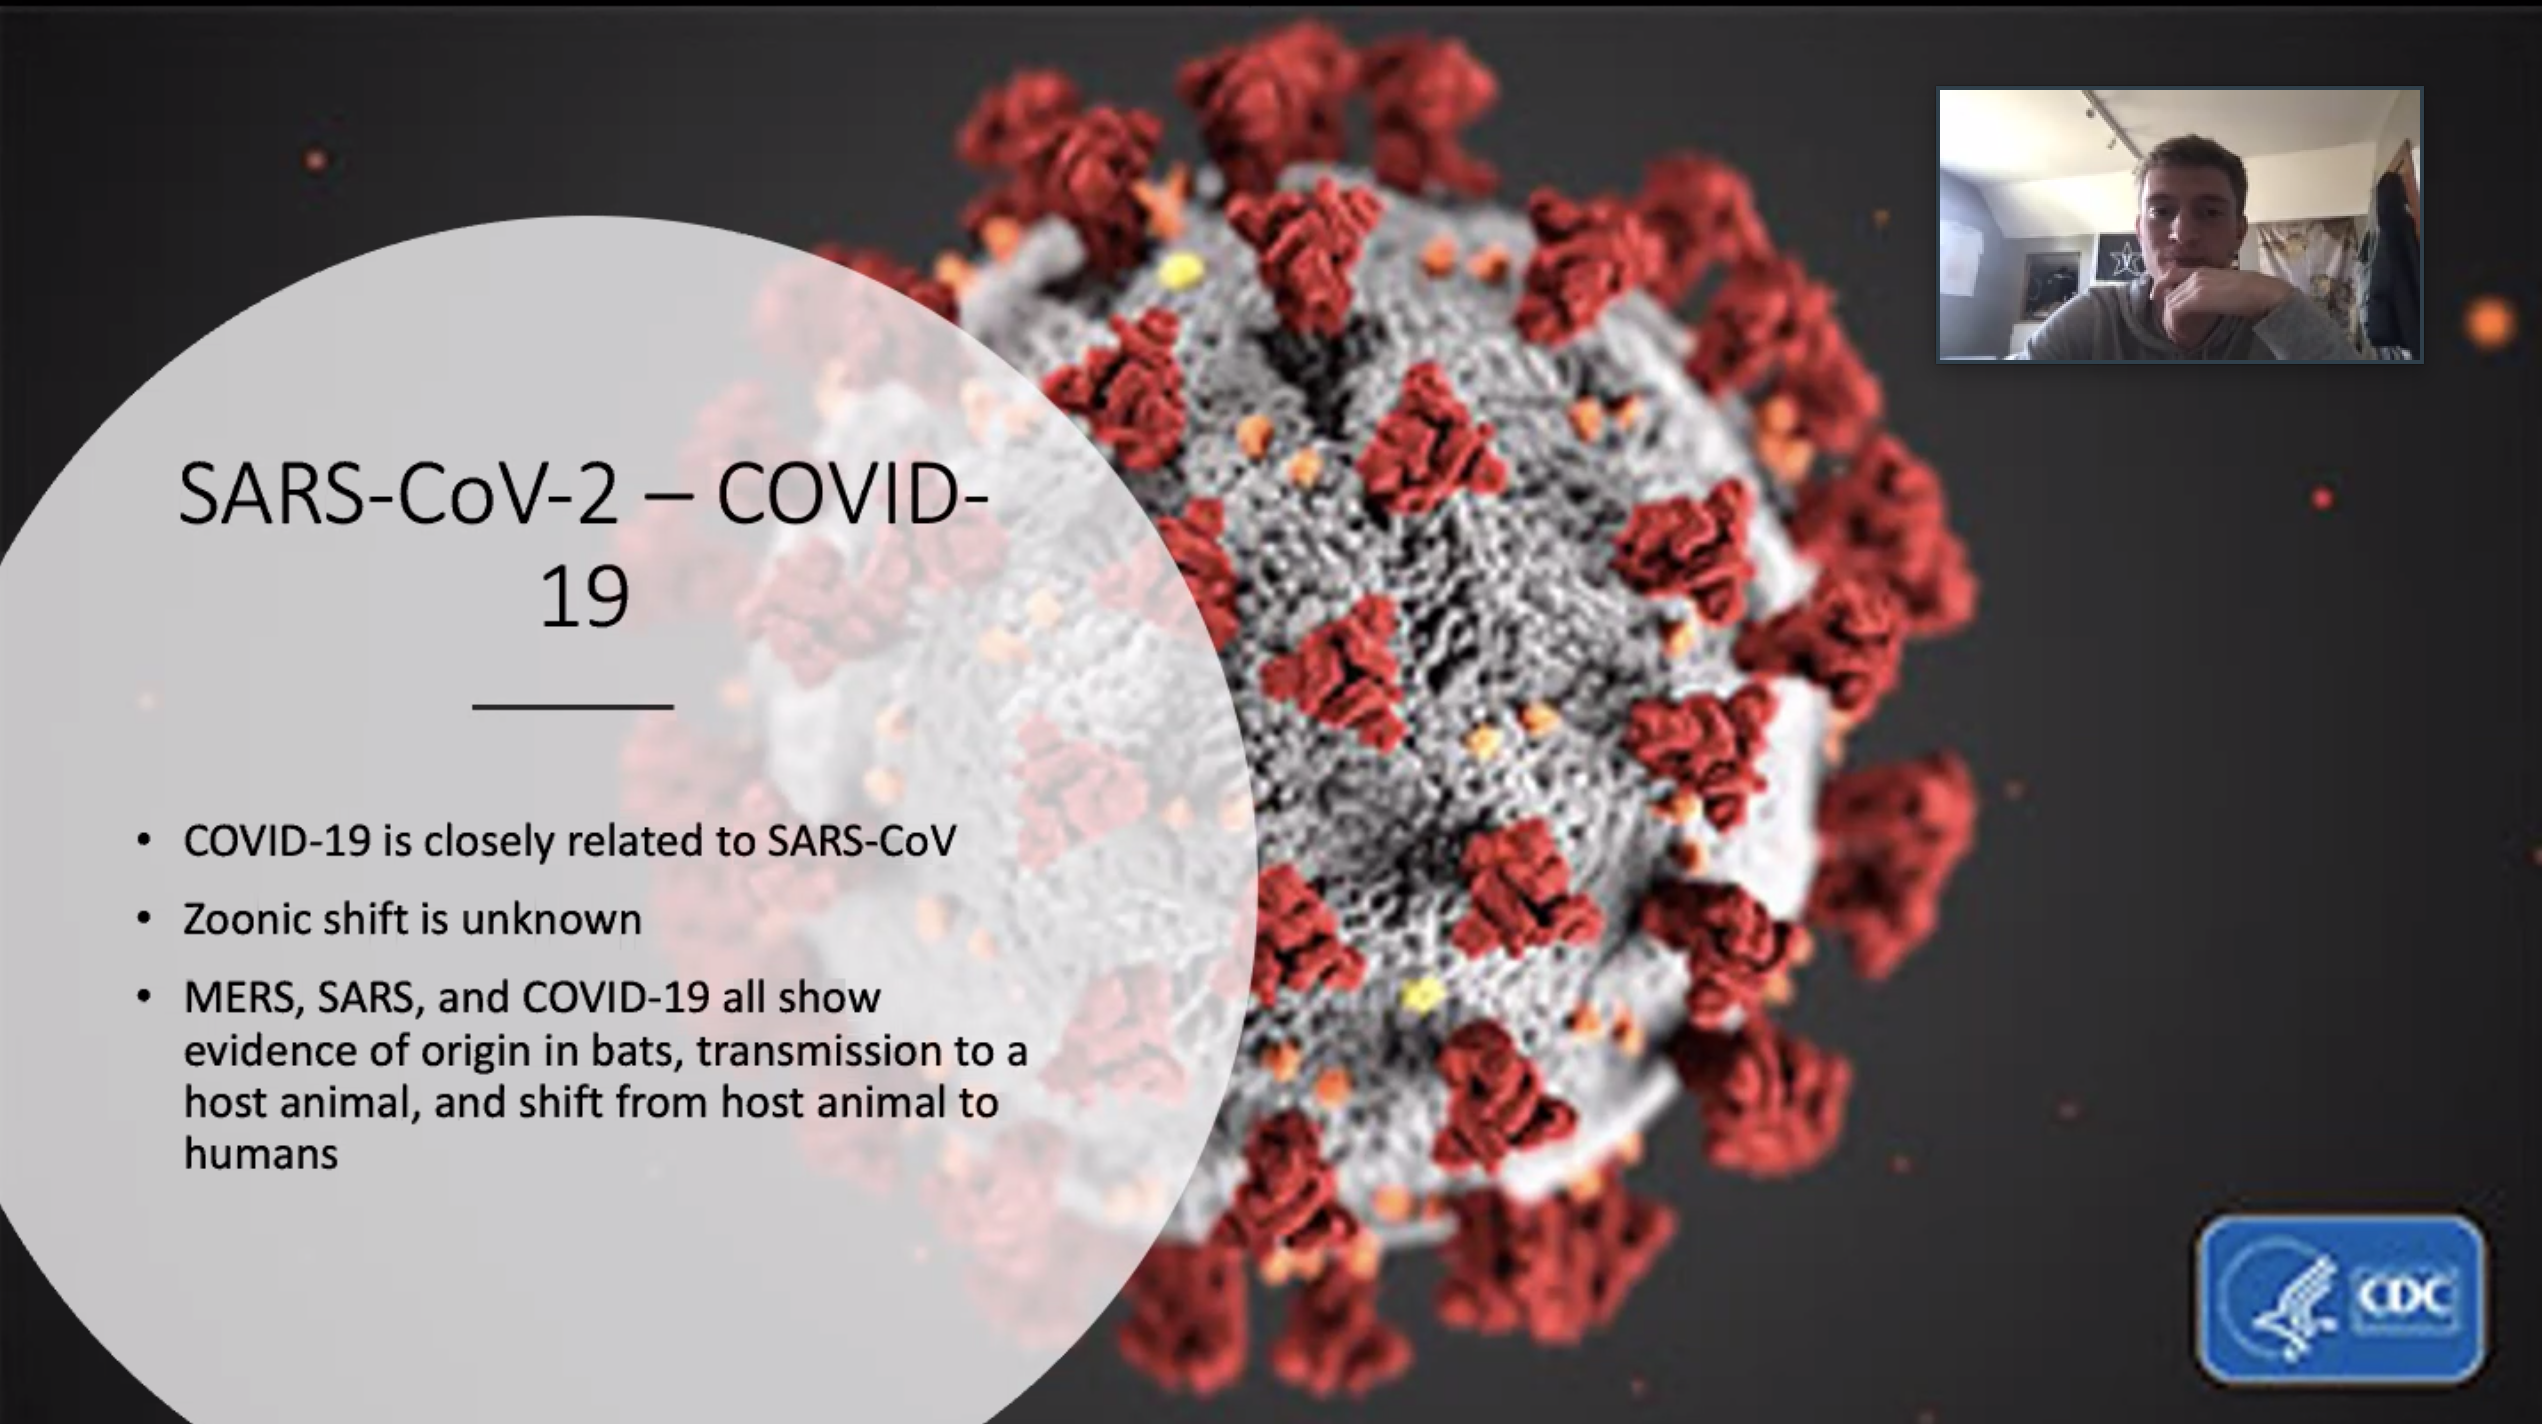 screen shot of a student presentation on Zoom, showing a graphic of the novel coronavirus, presentation title, and student's face